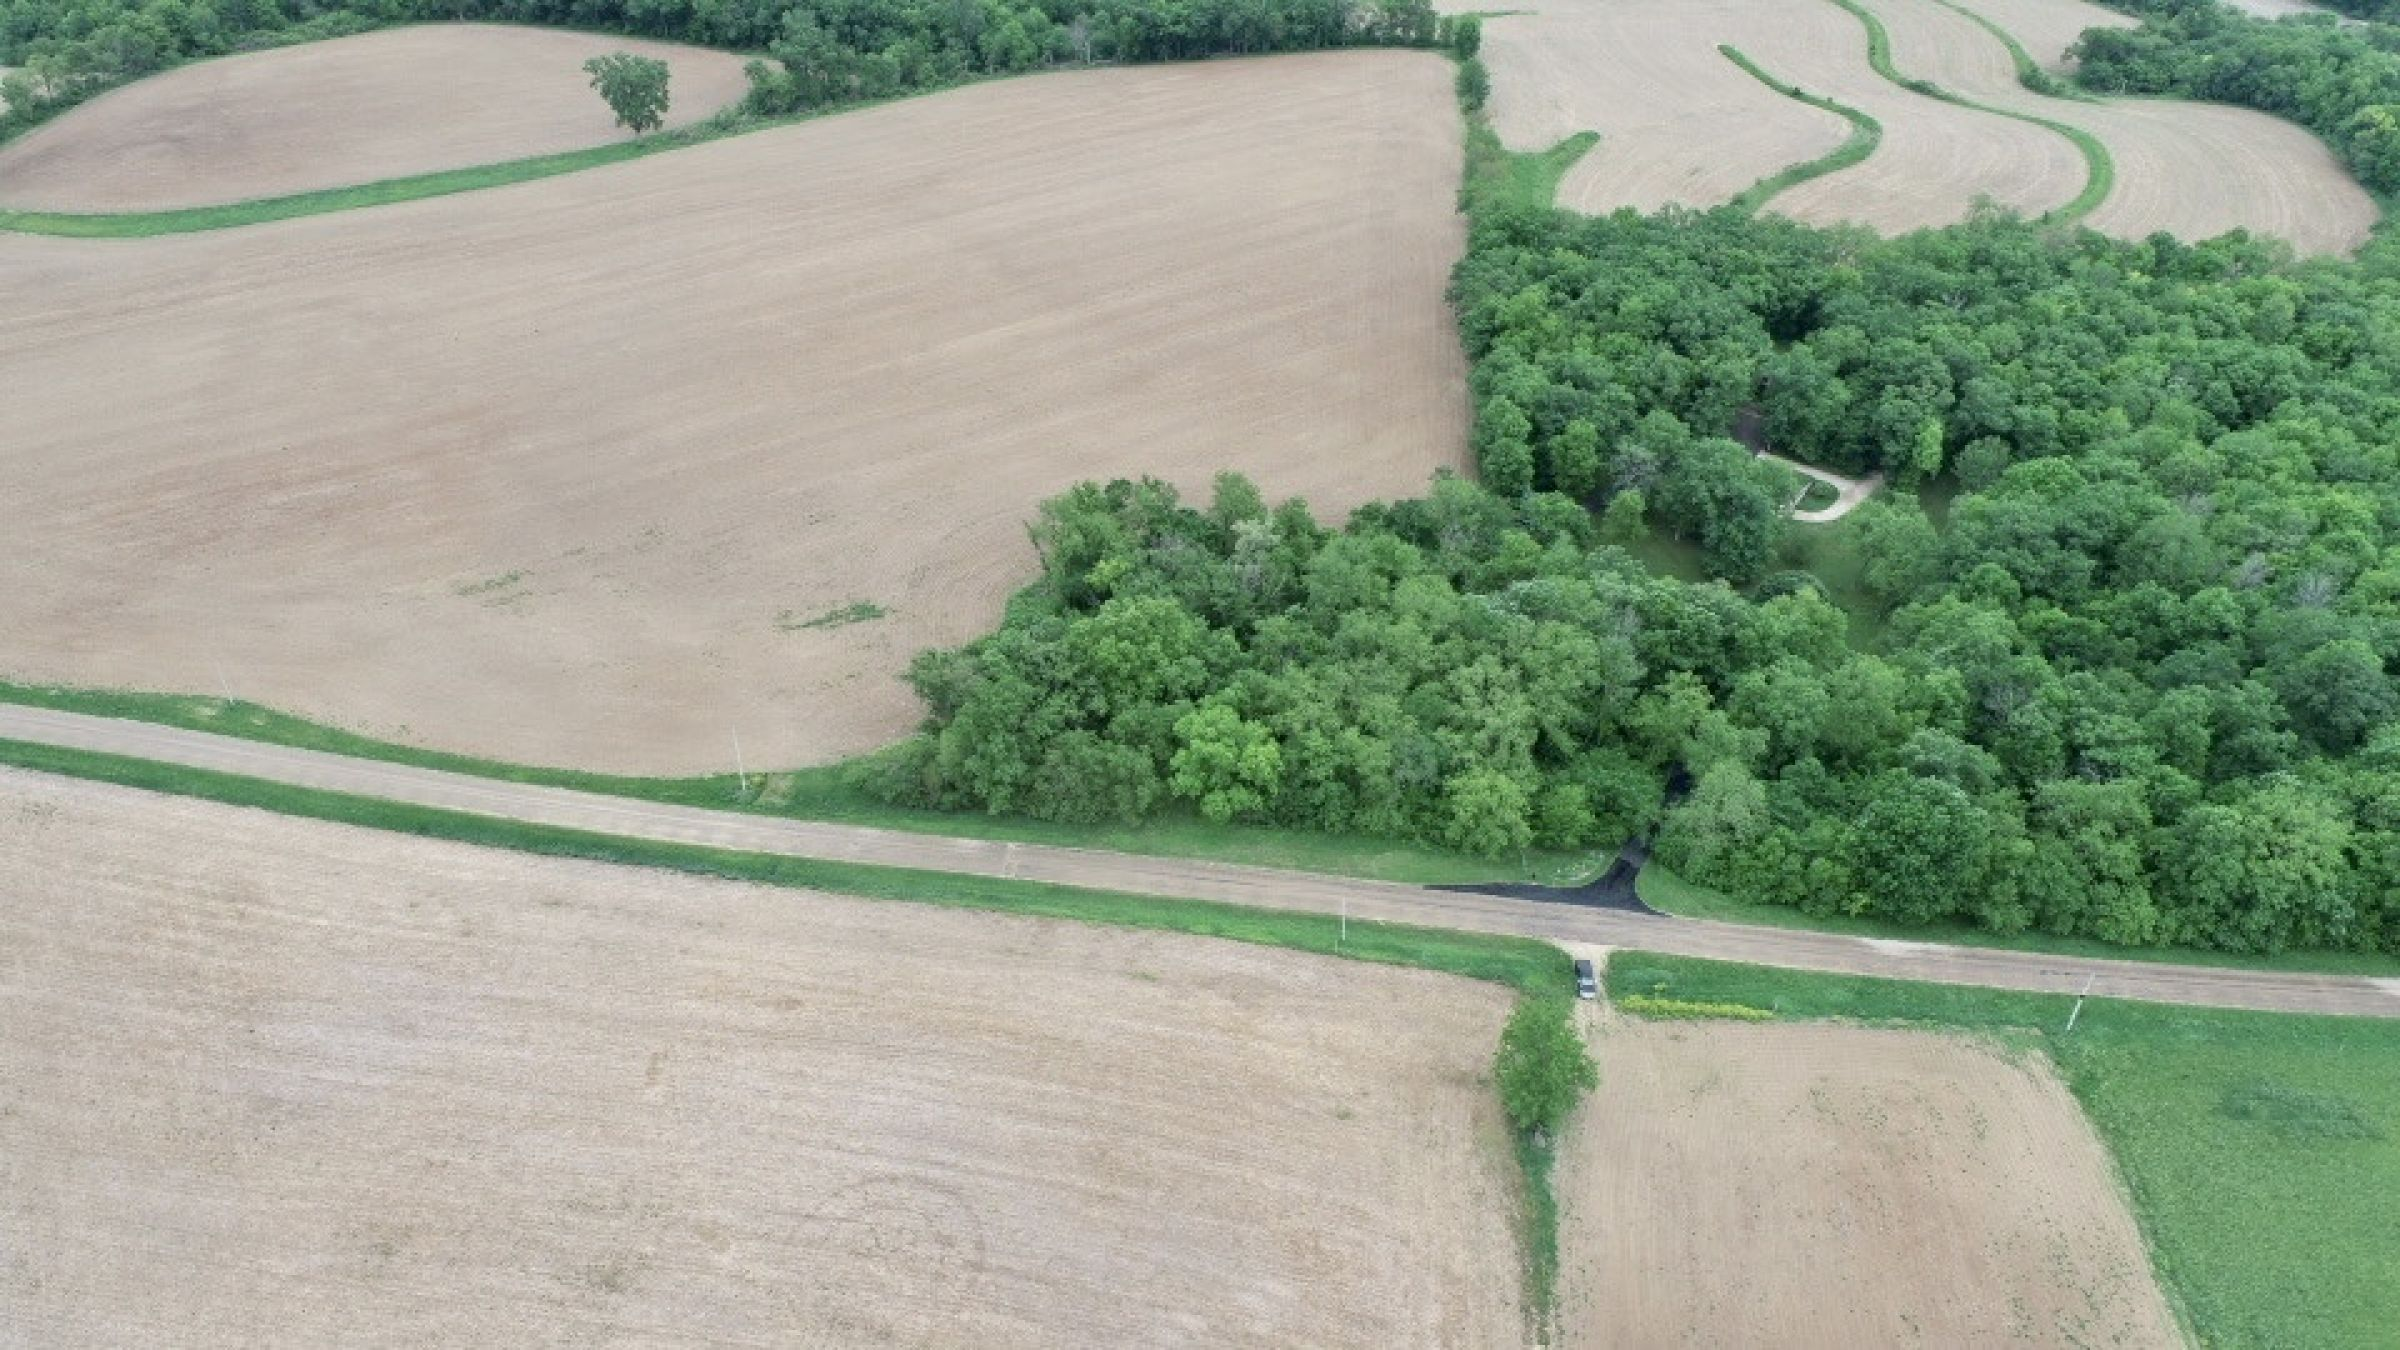 land-lafayette-county-wisconsin-1-acres-listing-number-15559-0-2021-05-28-184444.jpg